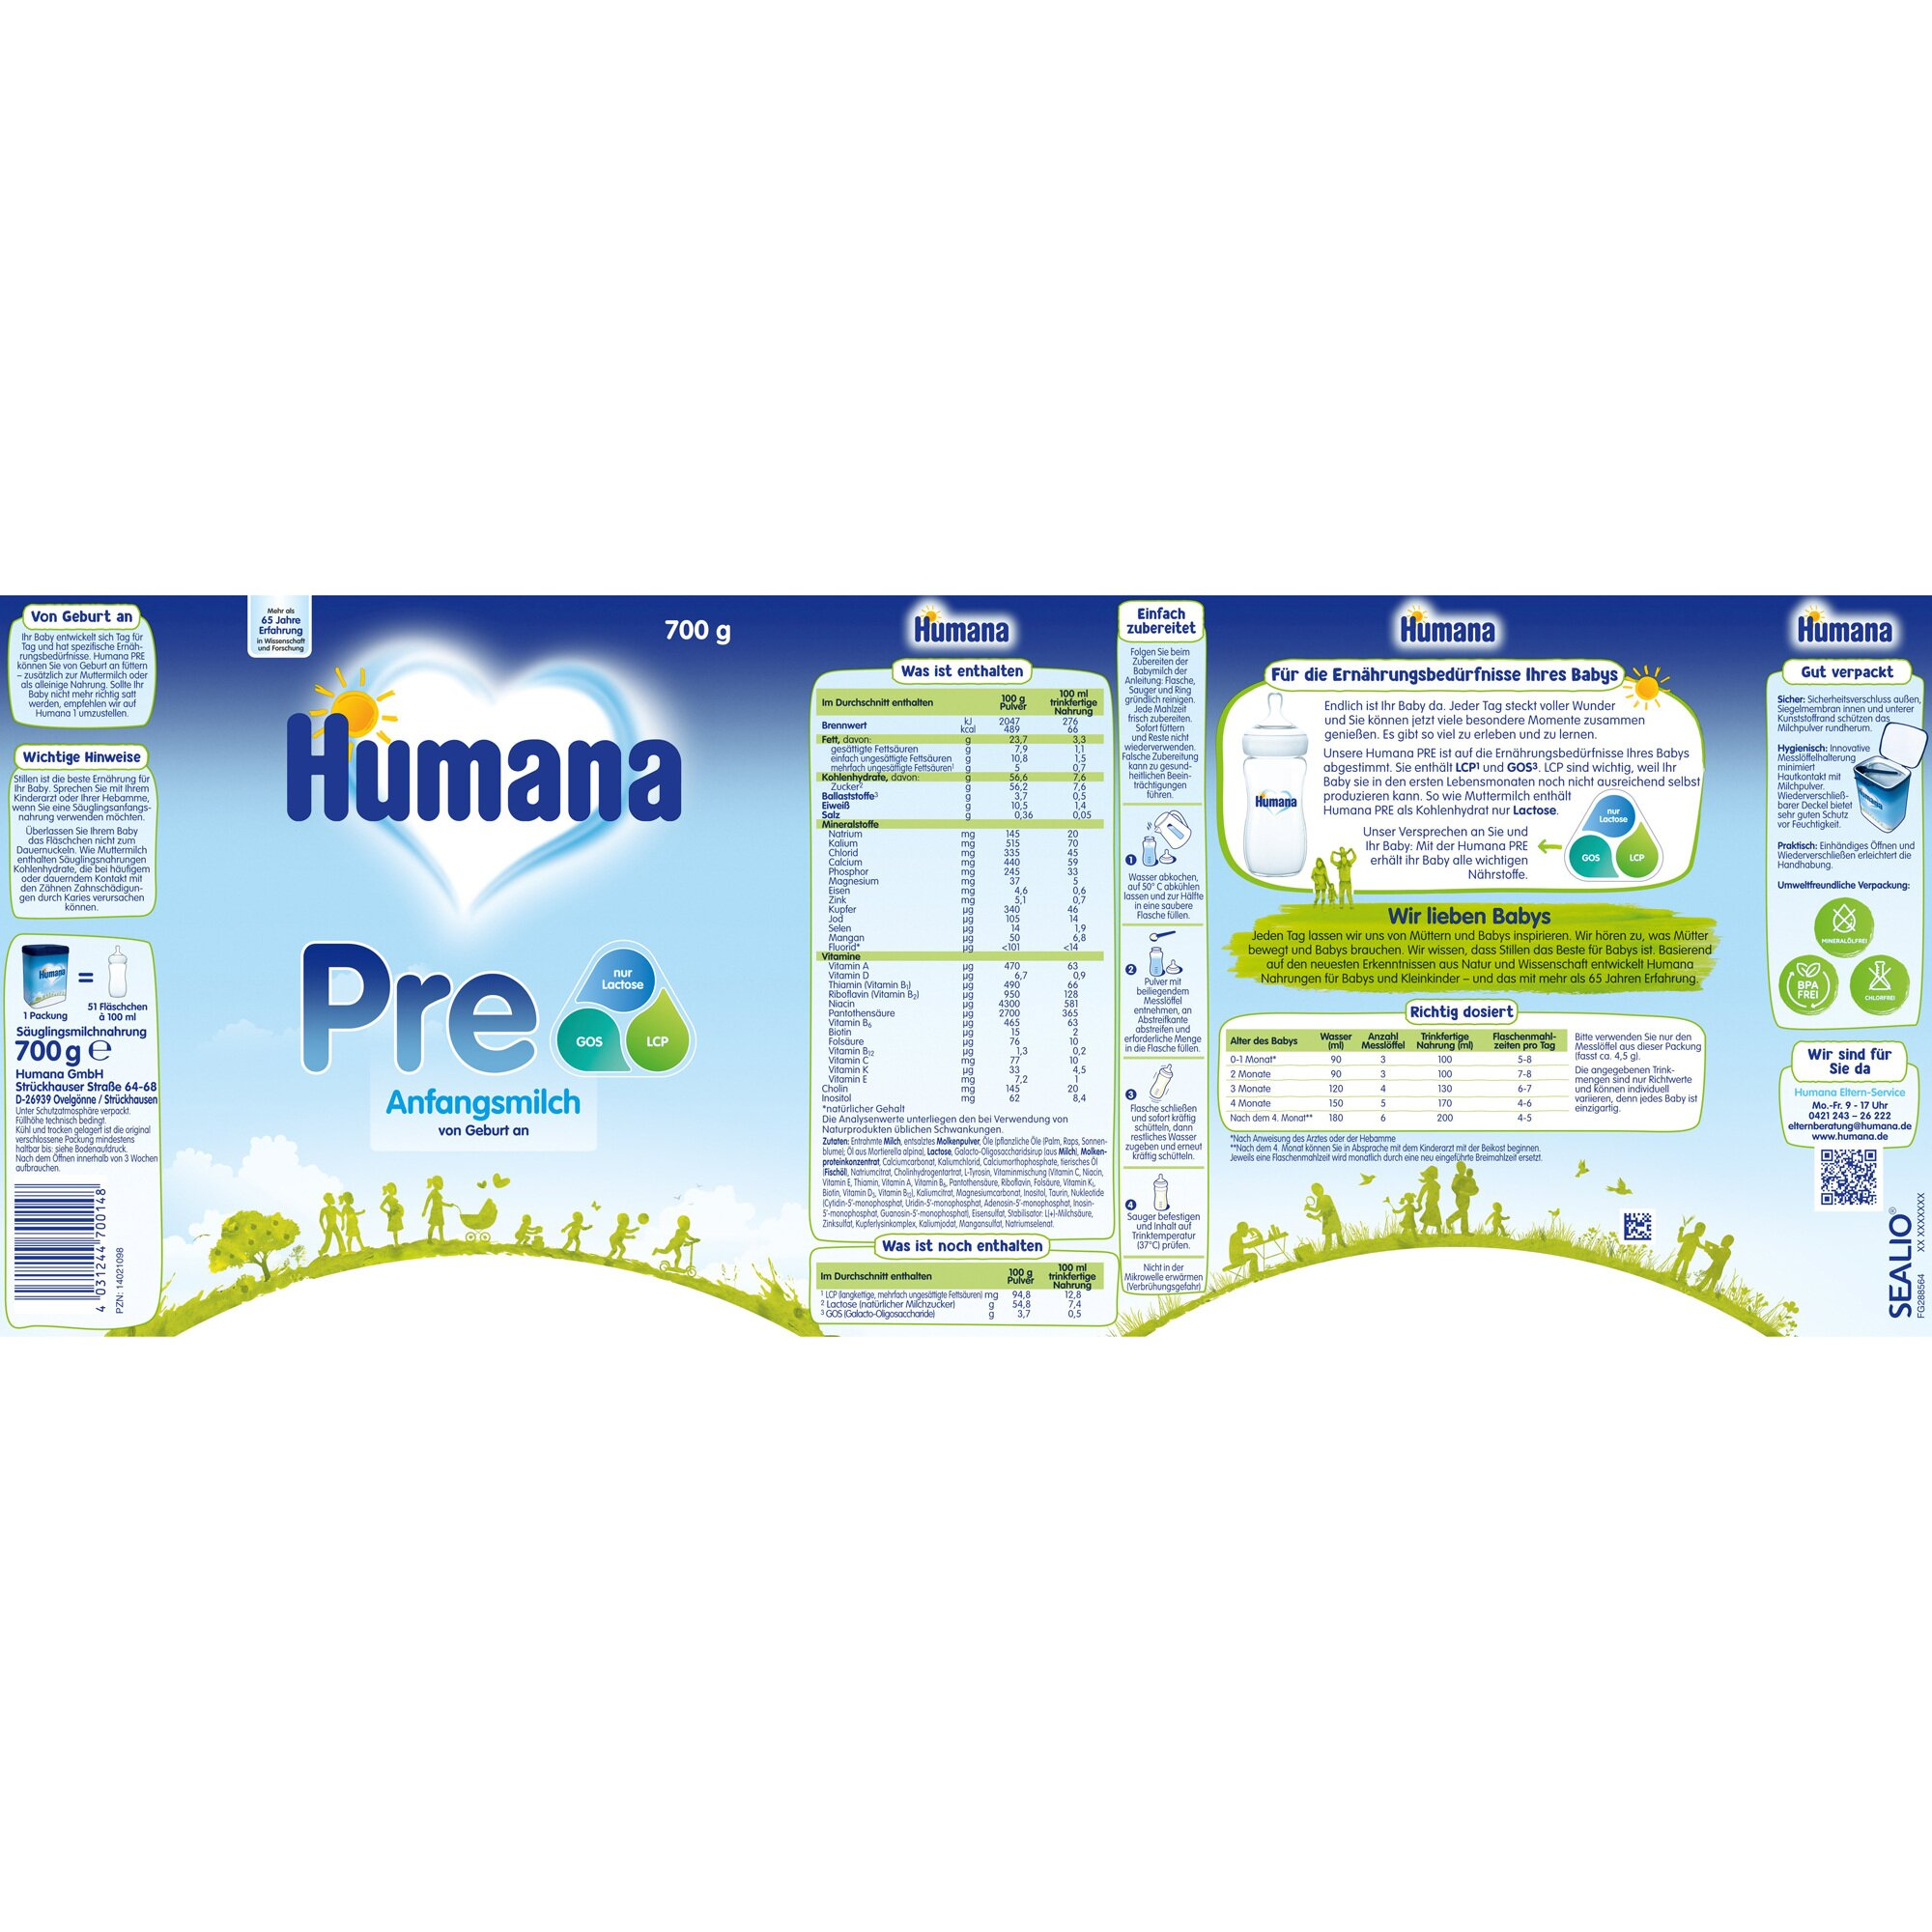 humana-anfangsmilch-pre-700g